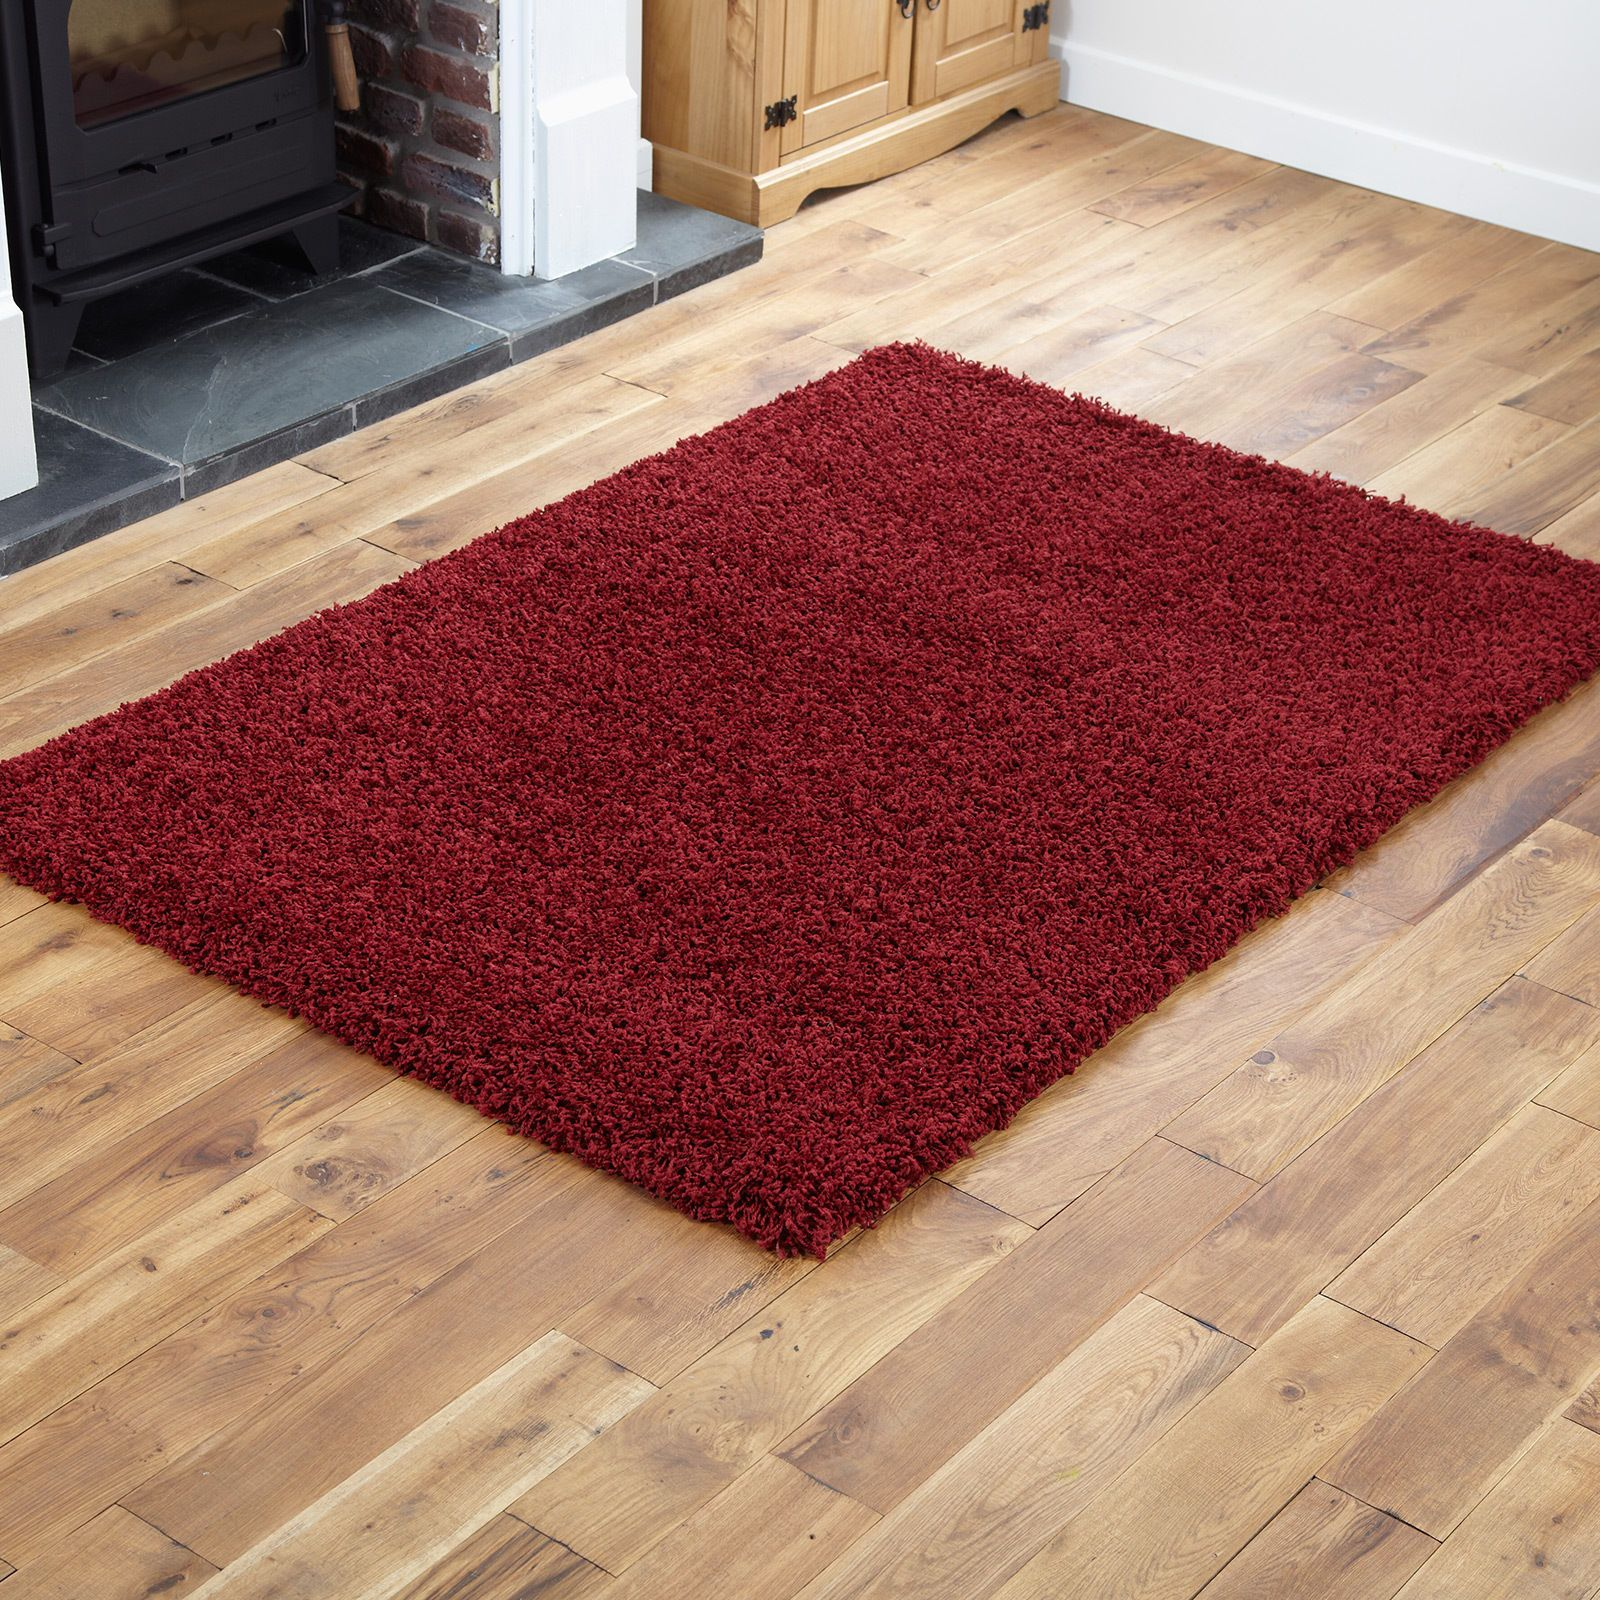 Small X Extra Large Thick Modern 5cm High Pile Plain Soft Non Shed Shaggy Rugs